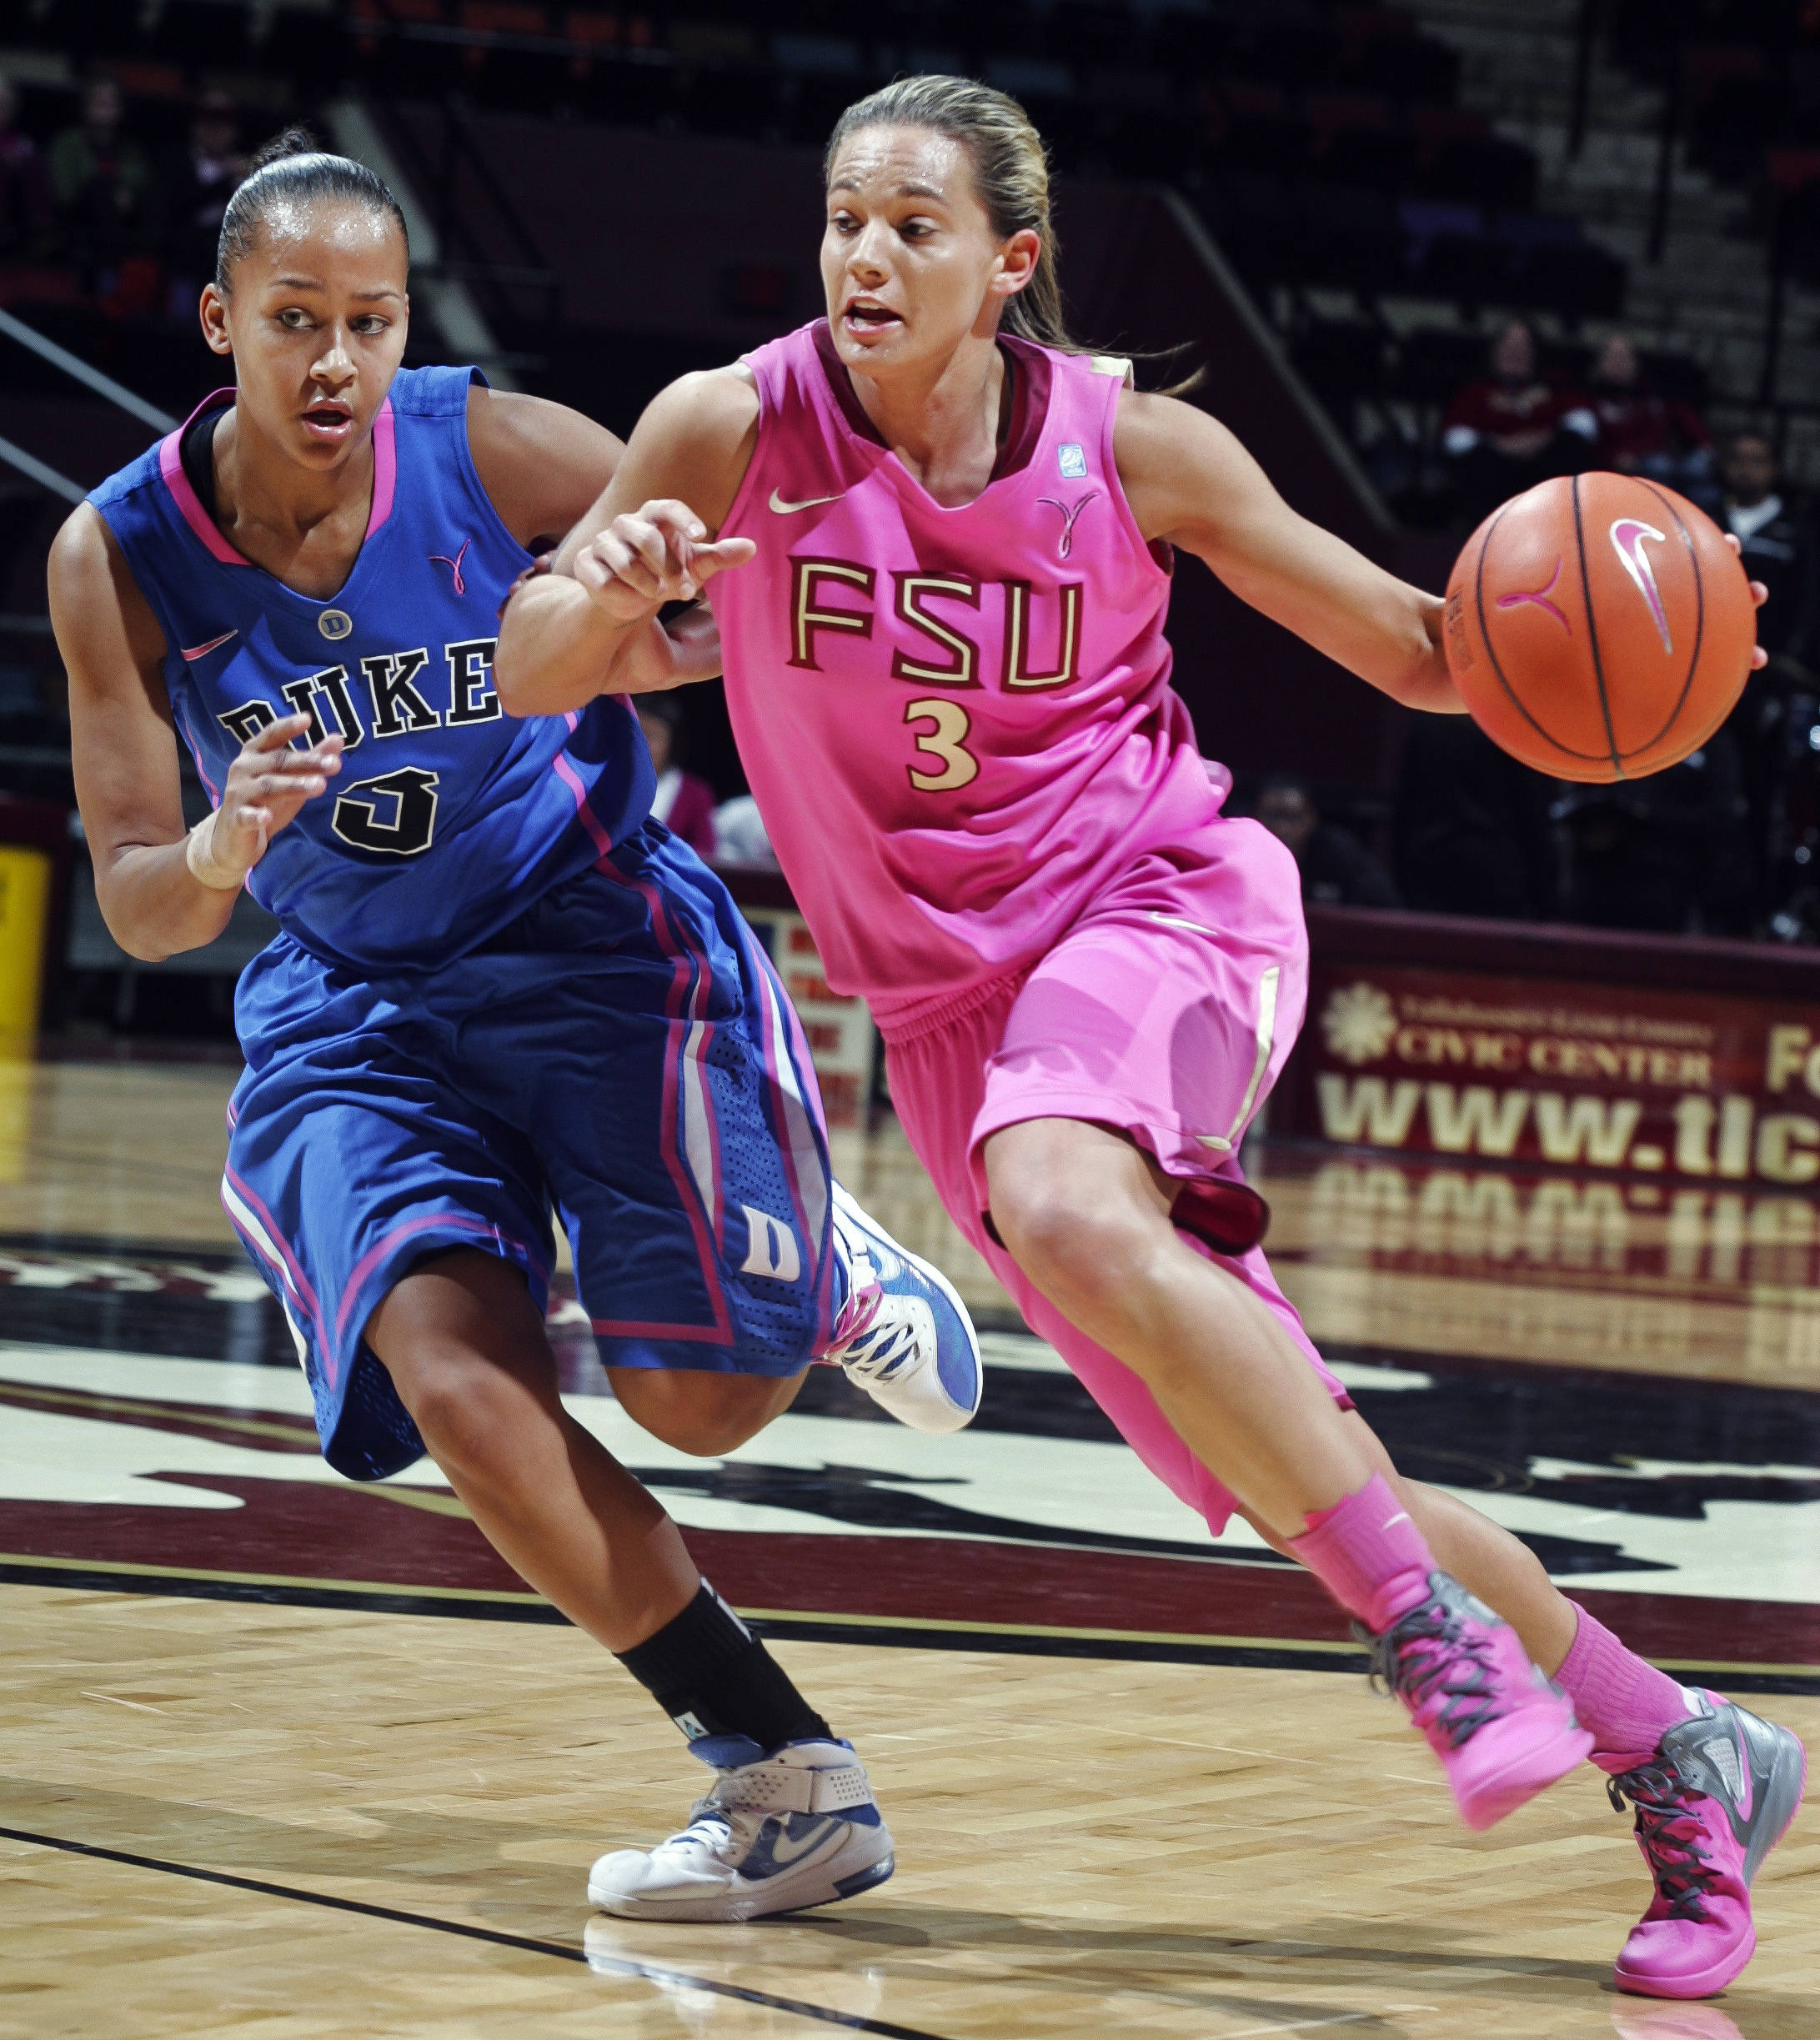 Florida State's Alexa Deluzio (3) drives around Duke's Shay Selby, left. (AP Photo/Phil Sears)